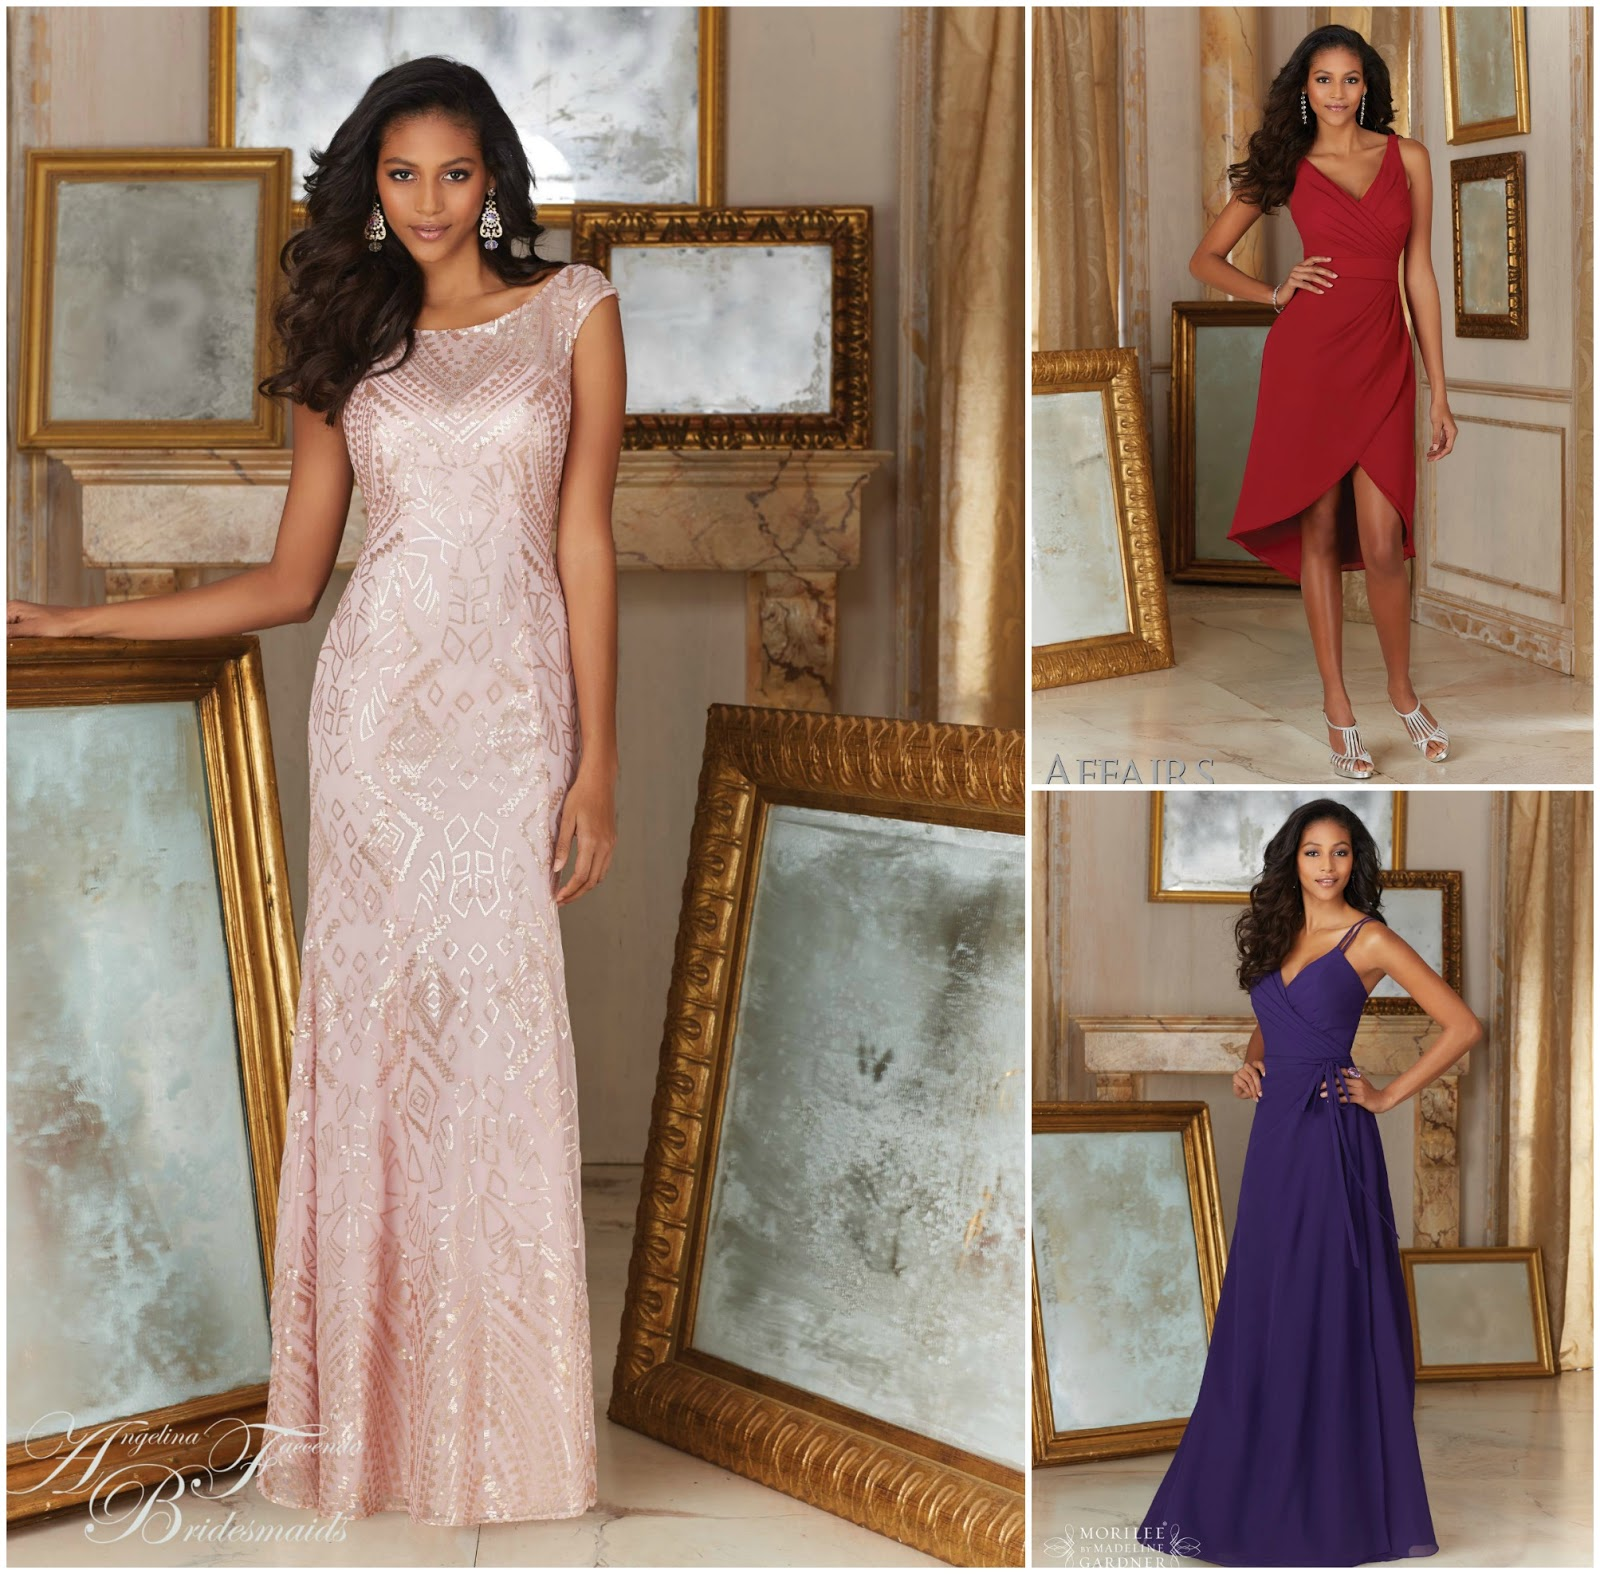 Brides of america online store may 2016 bridesmaid dresses ombrellifo Images